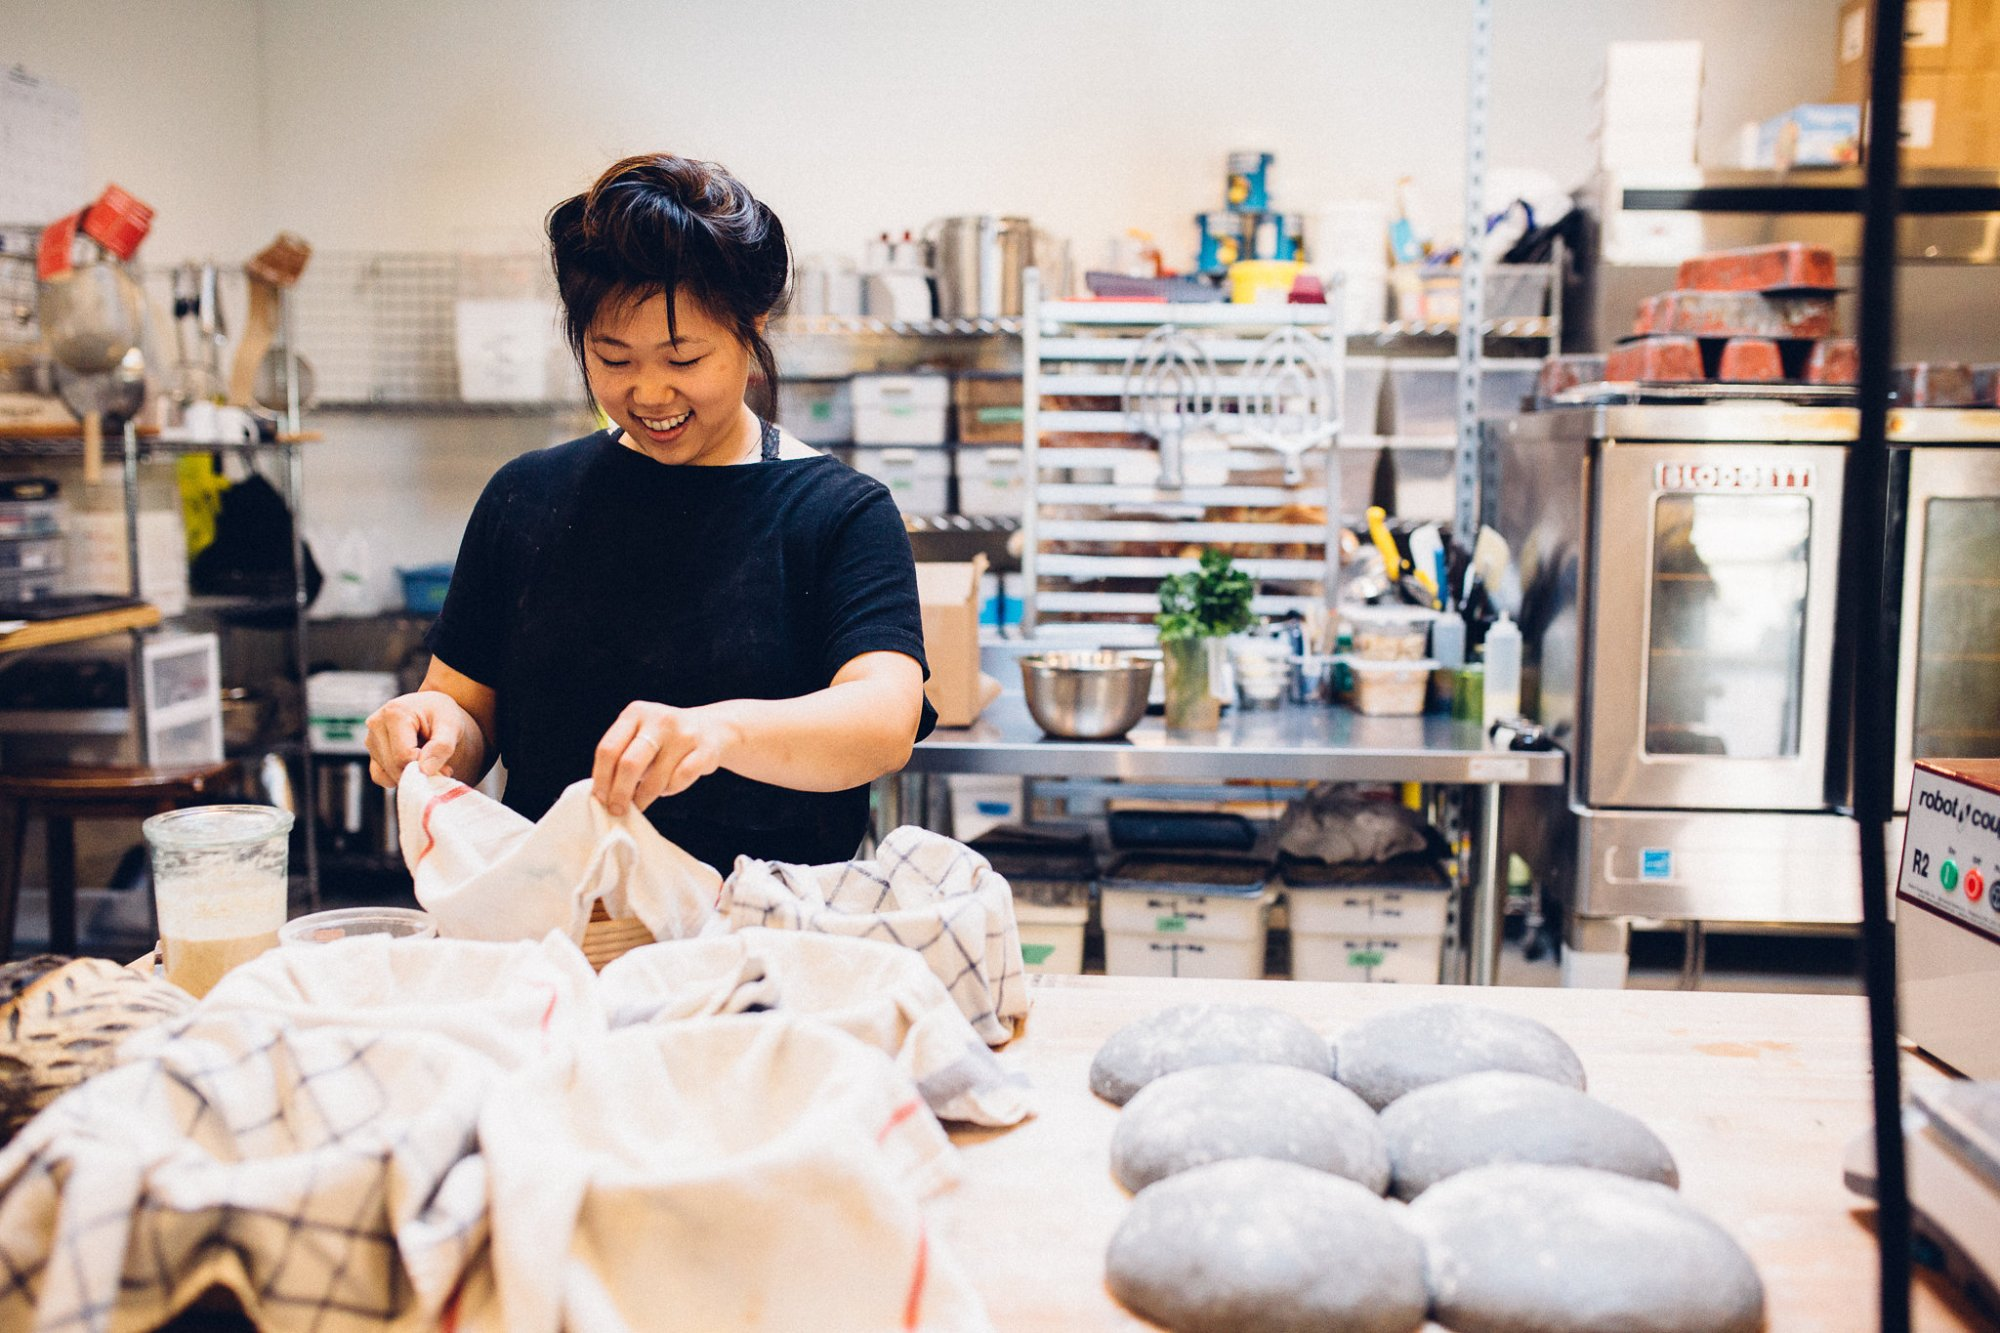 A Conversation With Chef Annabelle Choi